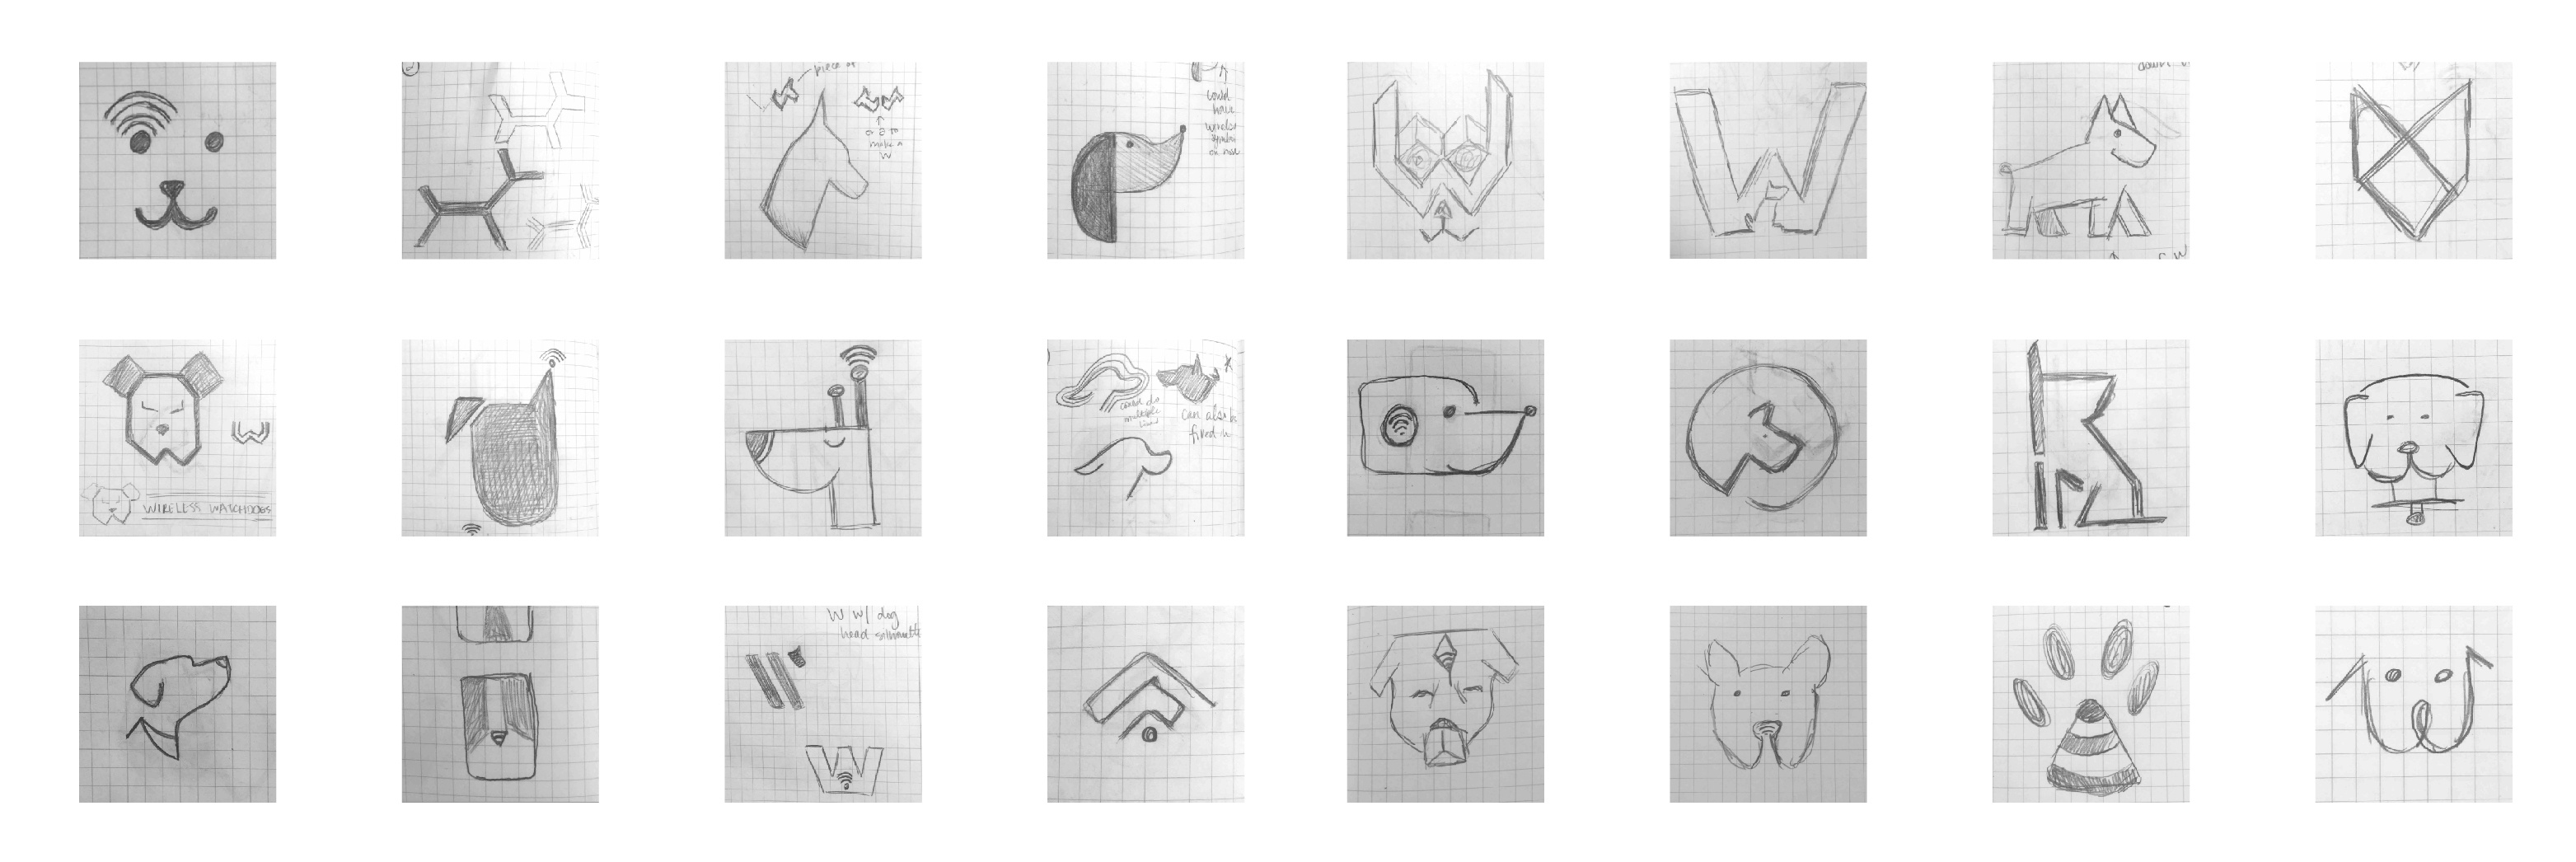 WW_Logo_Redesign_Concept_Sketches-04.jpg